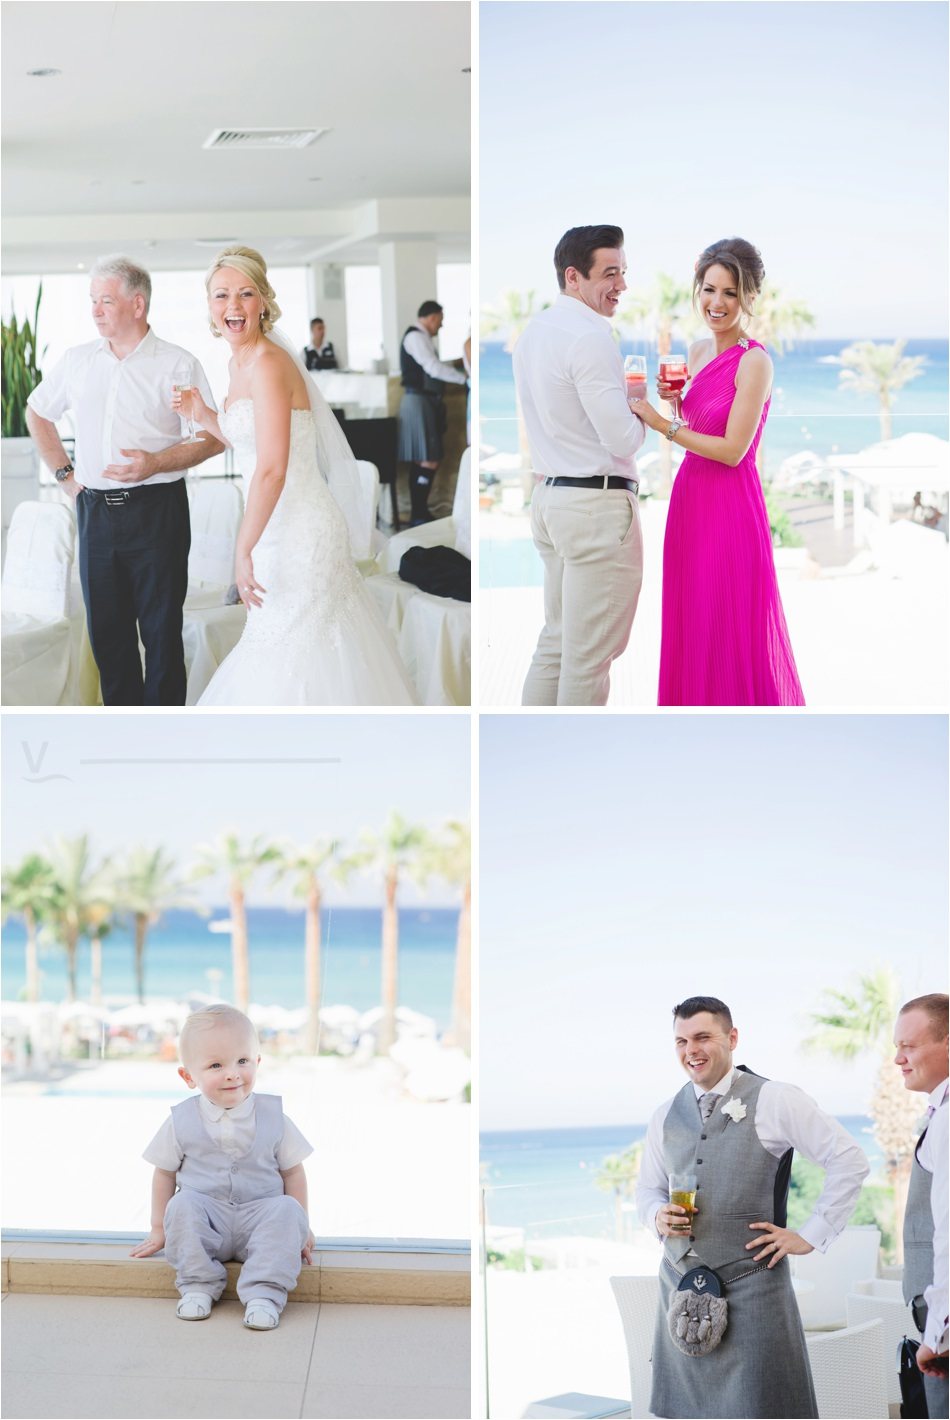 Destination wedding photographers scotland cyprus 7-2.jpg